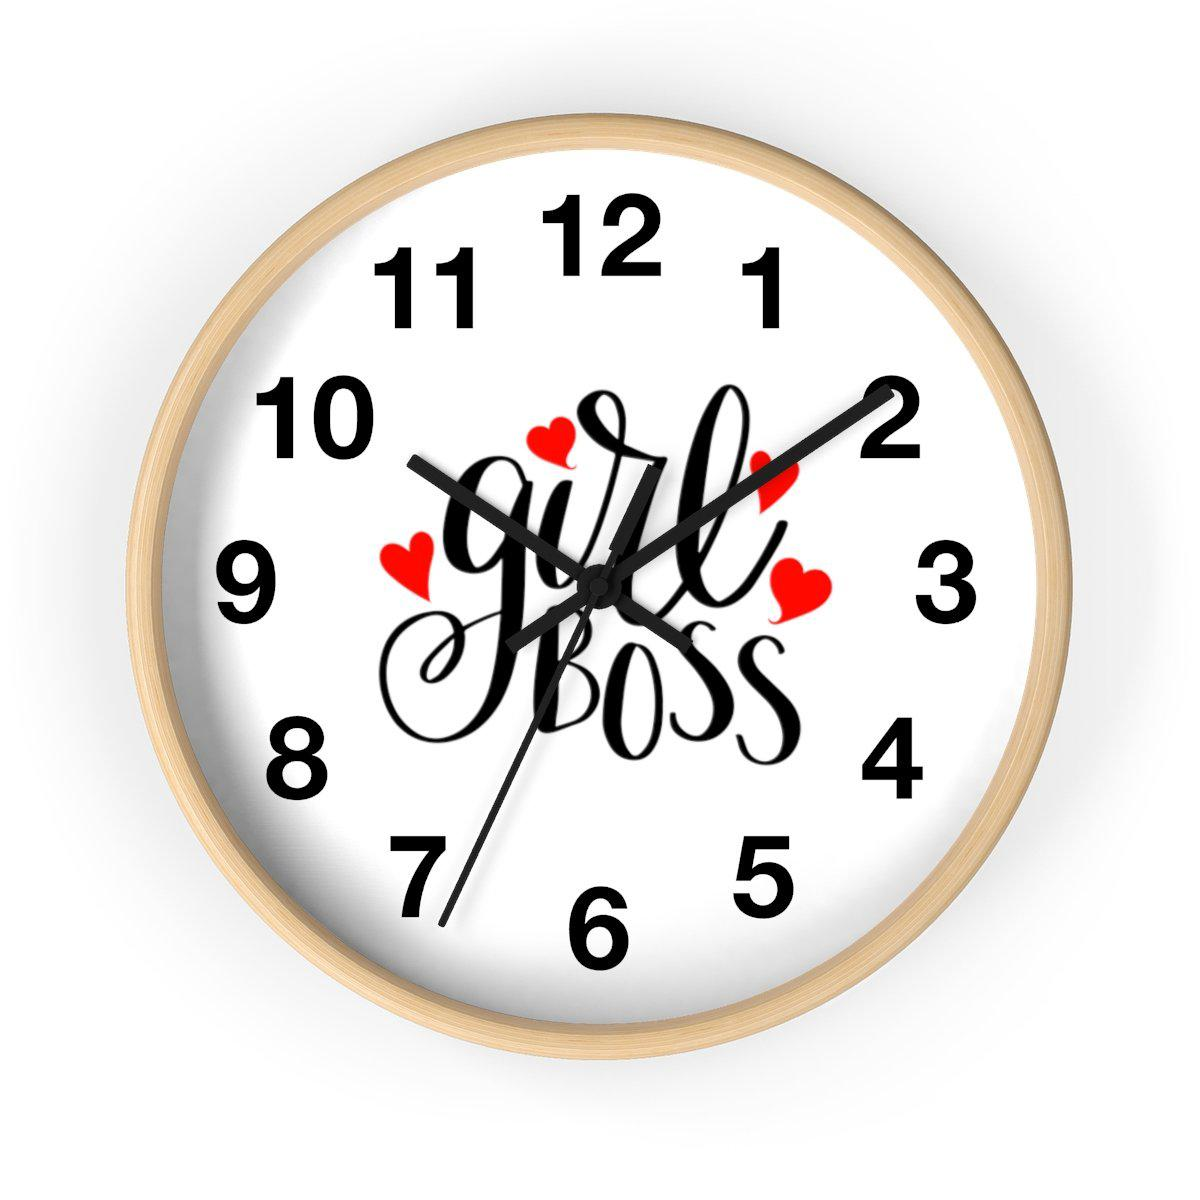 Maison d'Elite Girl Boss Wall clock-Home - Clocks - Wall clocks-Maison d'Elite-Wooden-Black-Très Elite